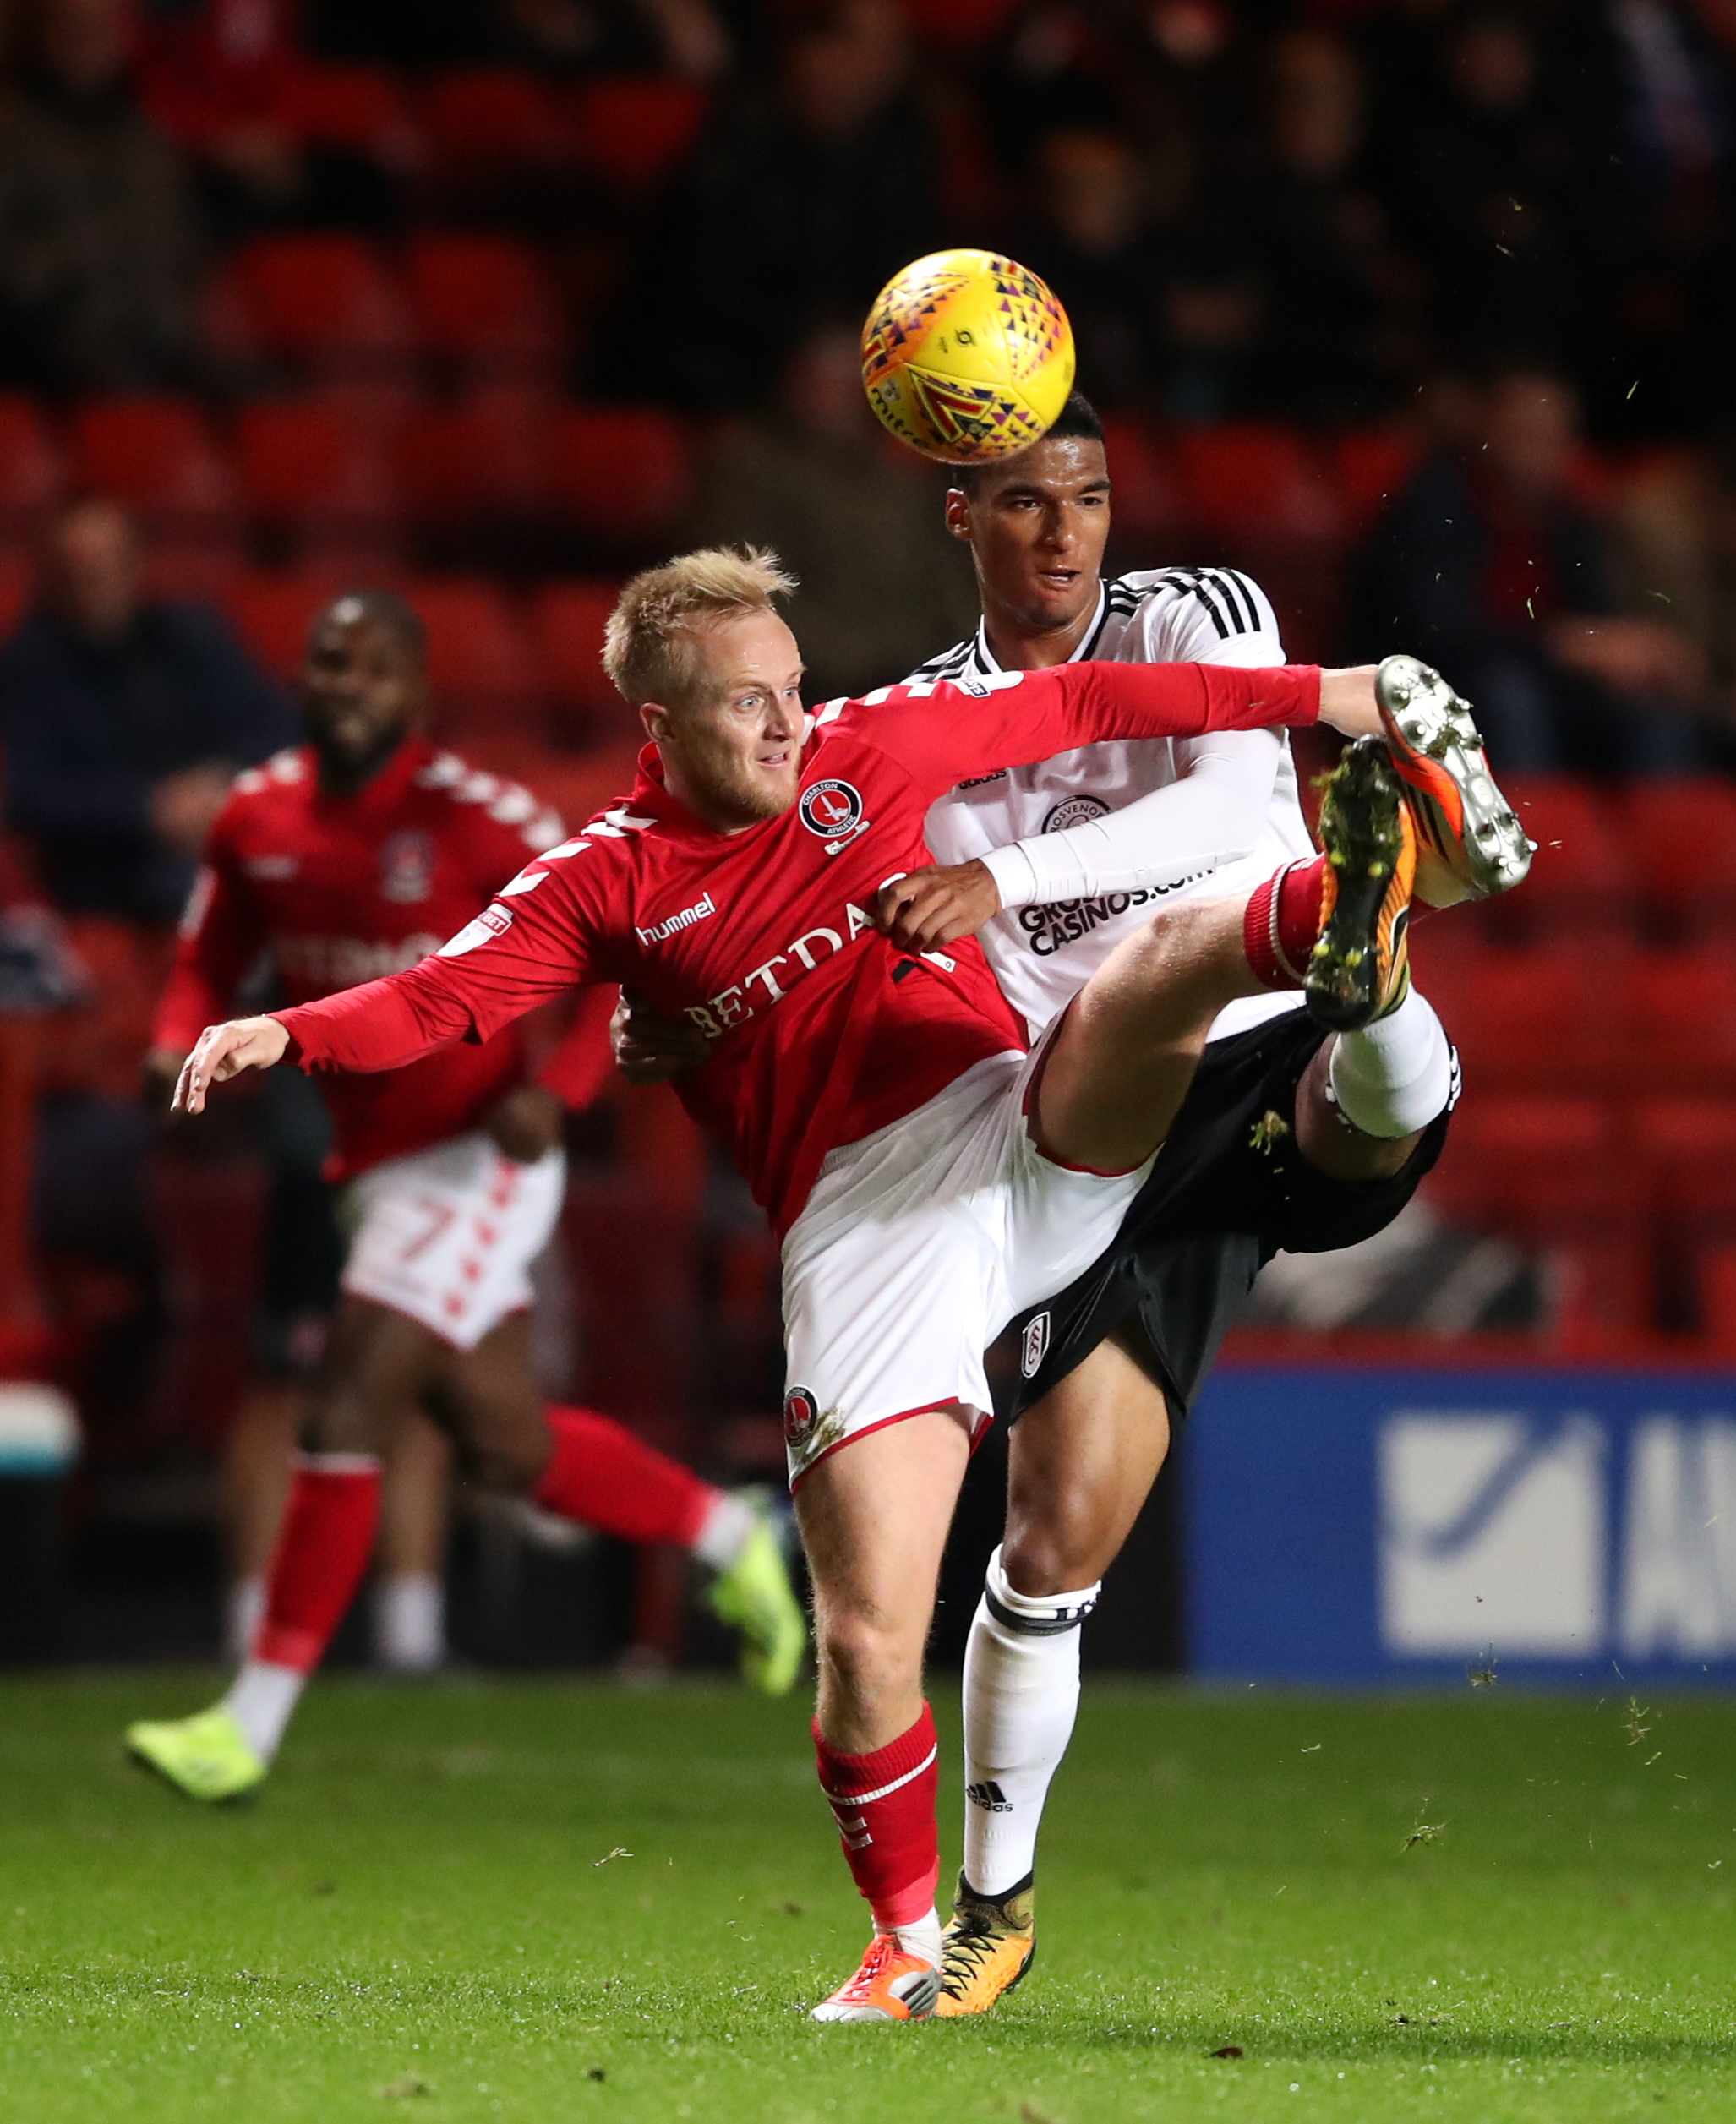 SkyBet English Football League Championship preview, 4-5 October